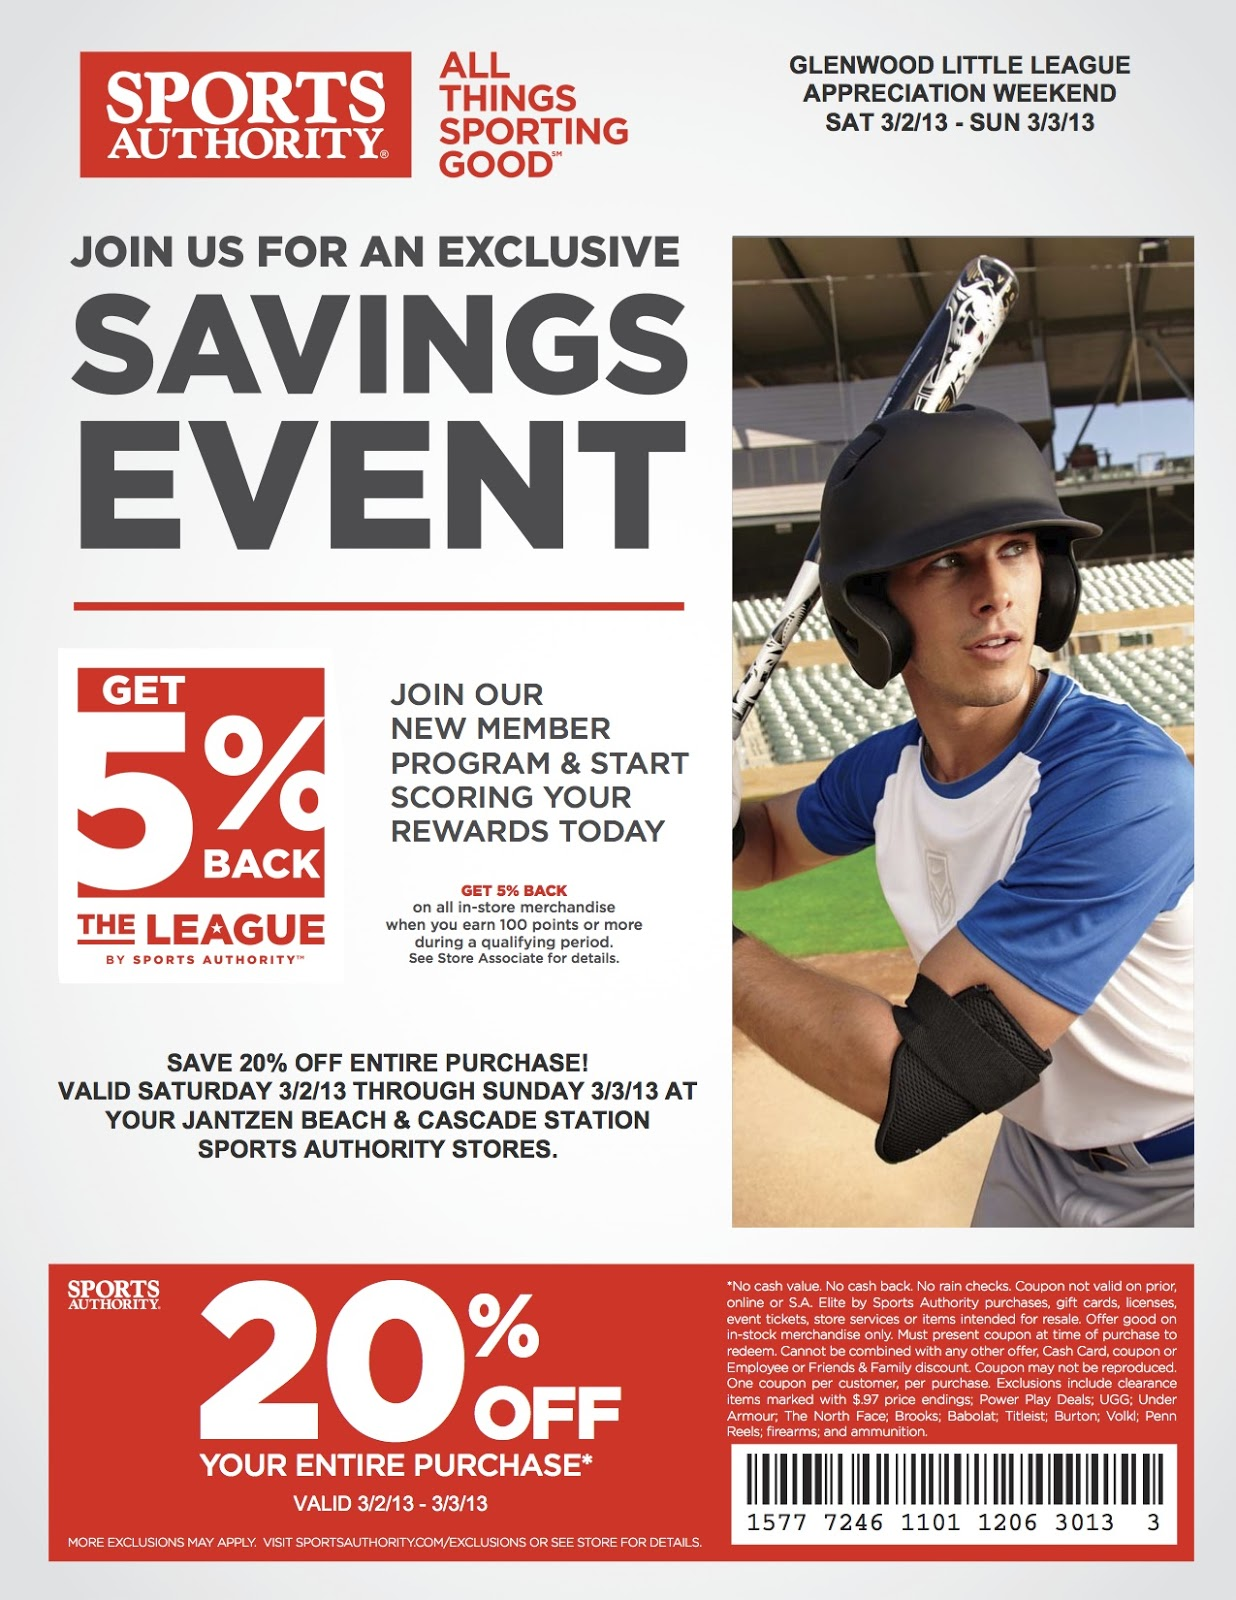 Sportsauthority coupon code